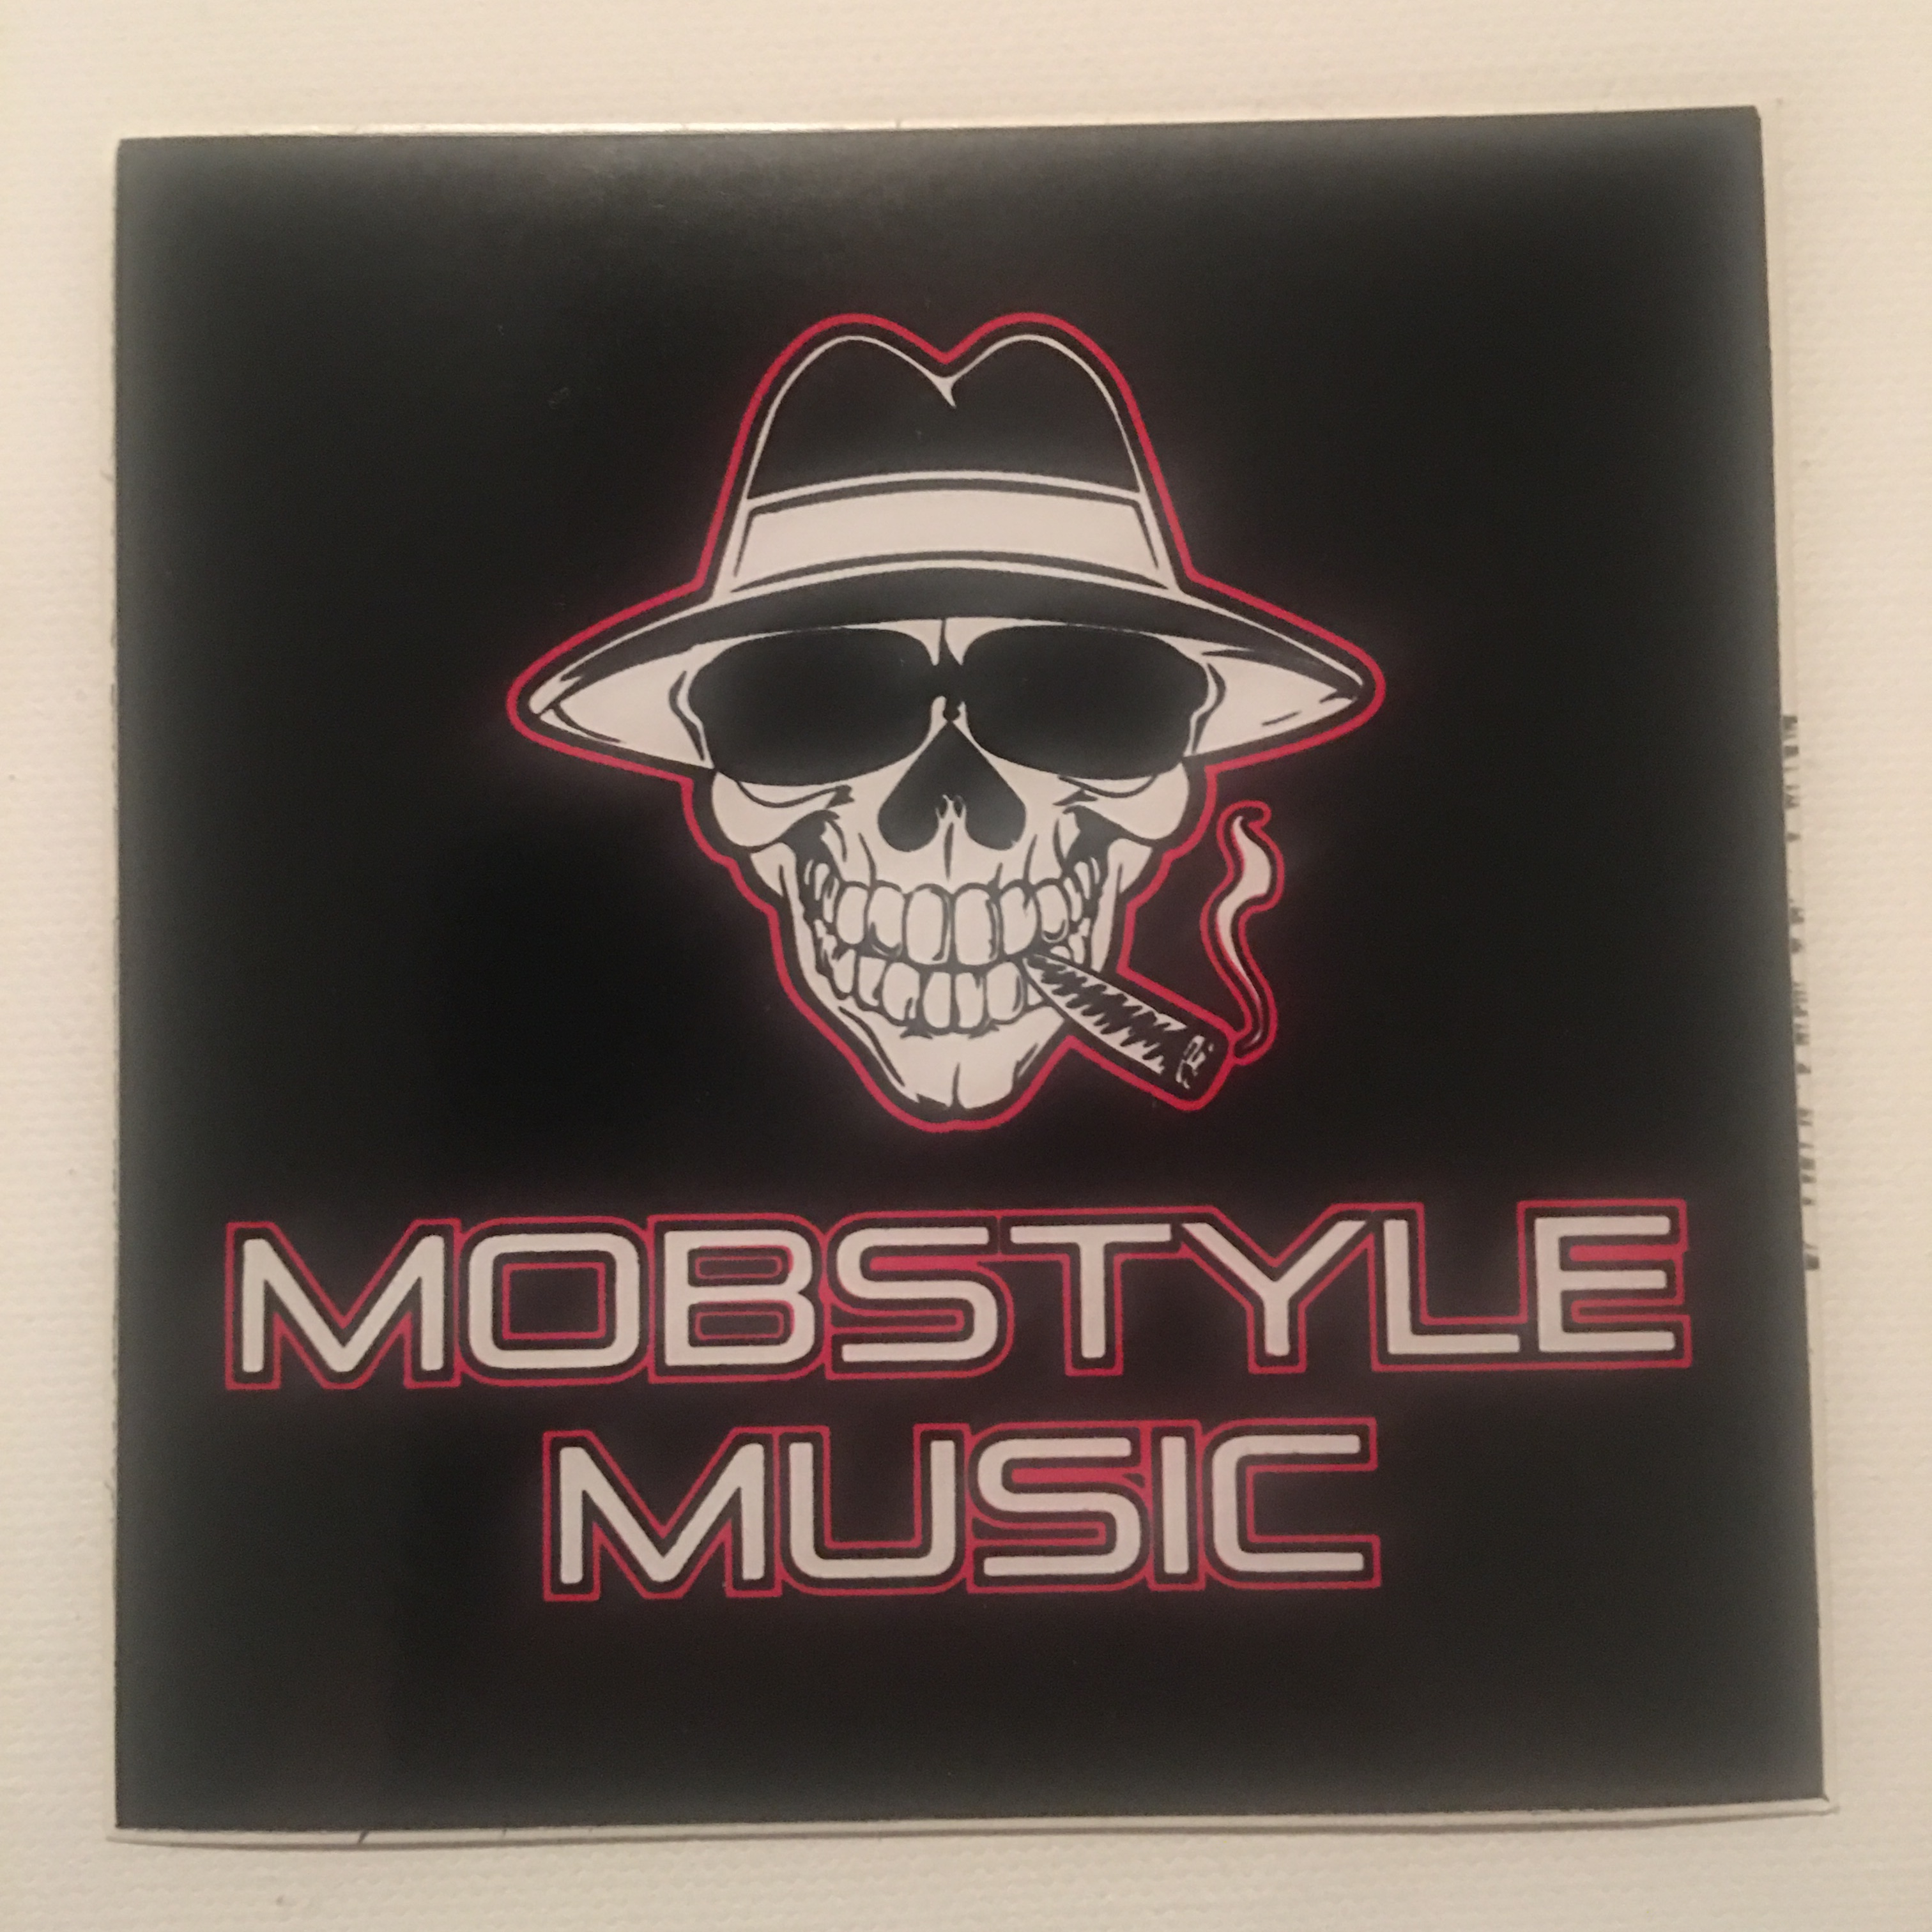 Mobstyle Music 4″ Full Color Sticker